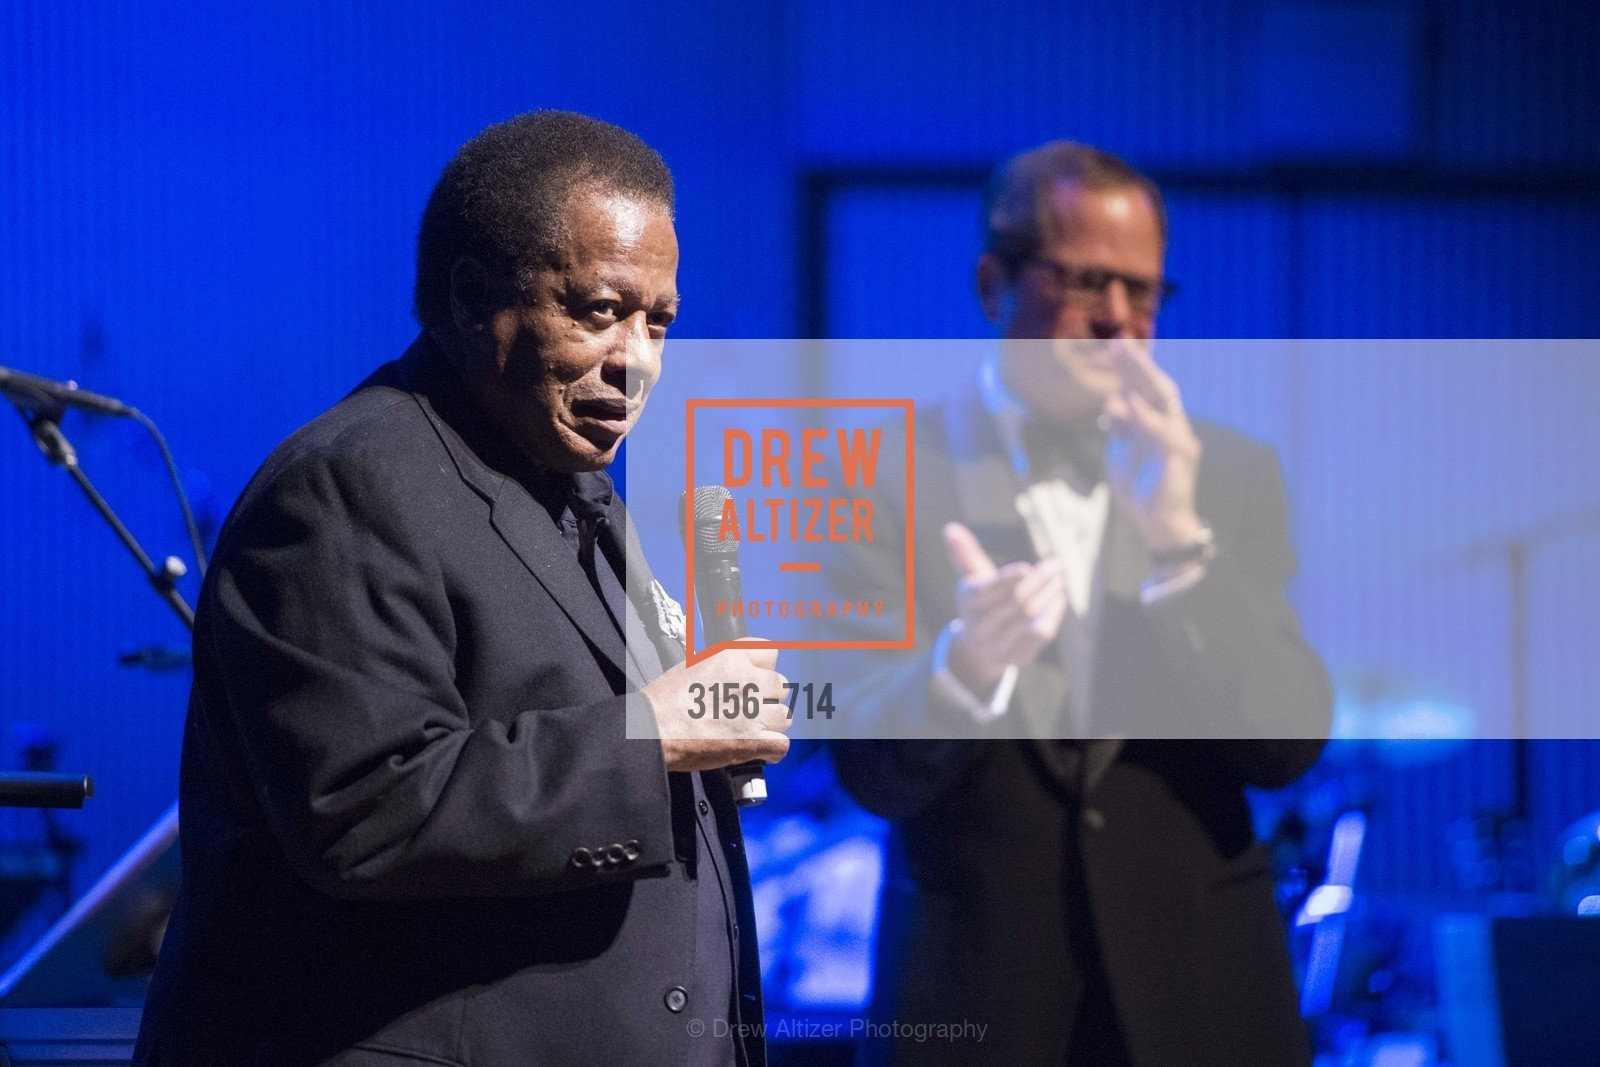 Wayne Shorter, SFJAZZ Gala 2015 Honors Joni Mitchell with Lifetime Achievement Award, US, May 8th, 2015,Drew Altizer, Drew Altizer Photography, full-service agency, private events, San Francisco photographer, photographer california